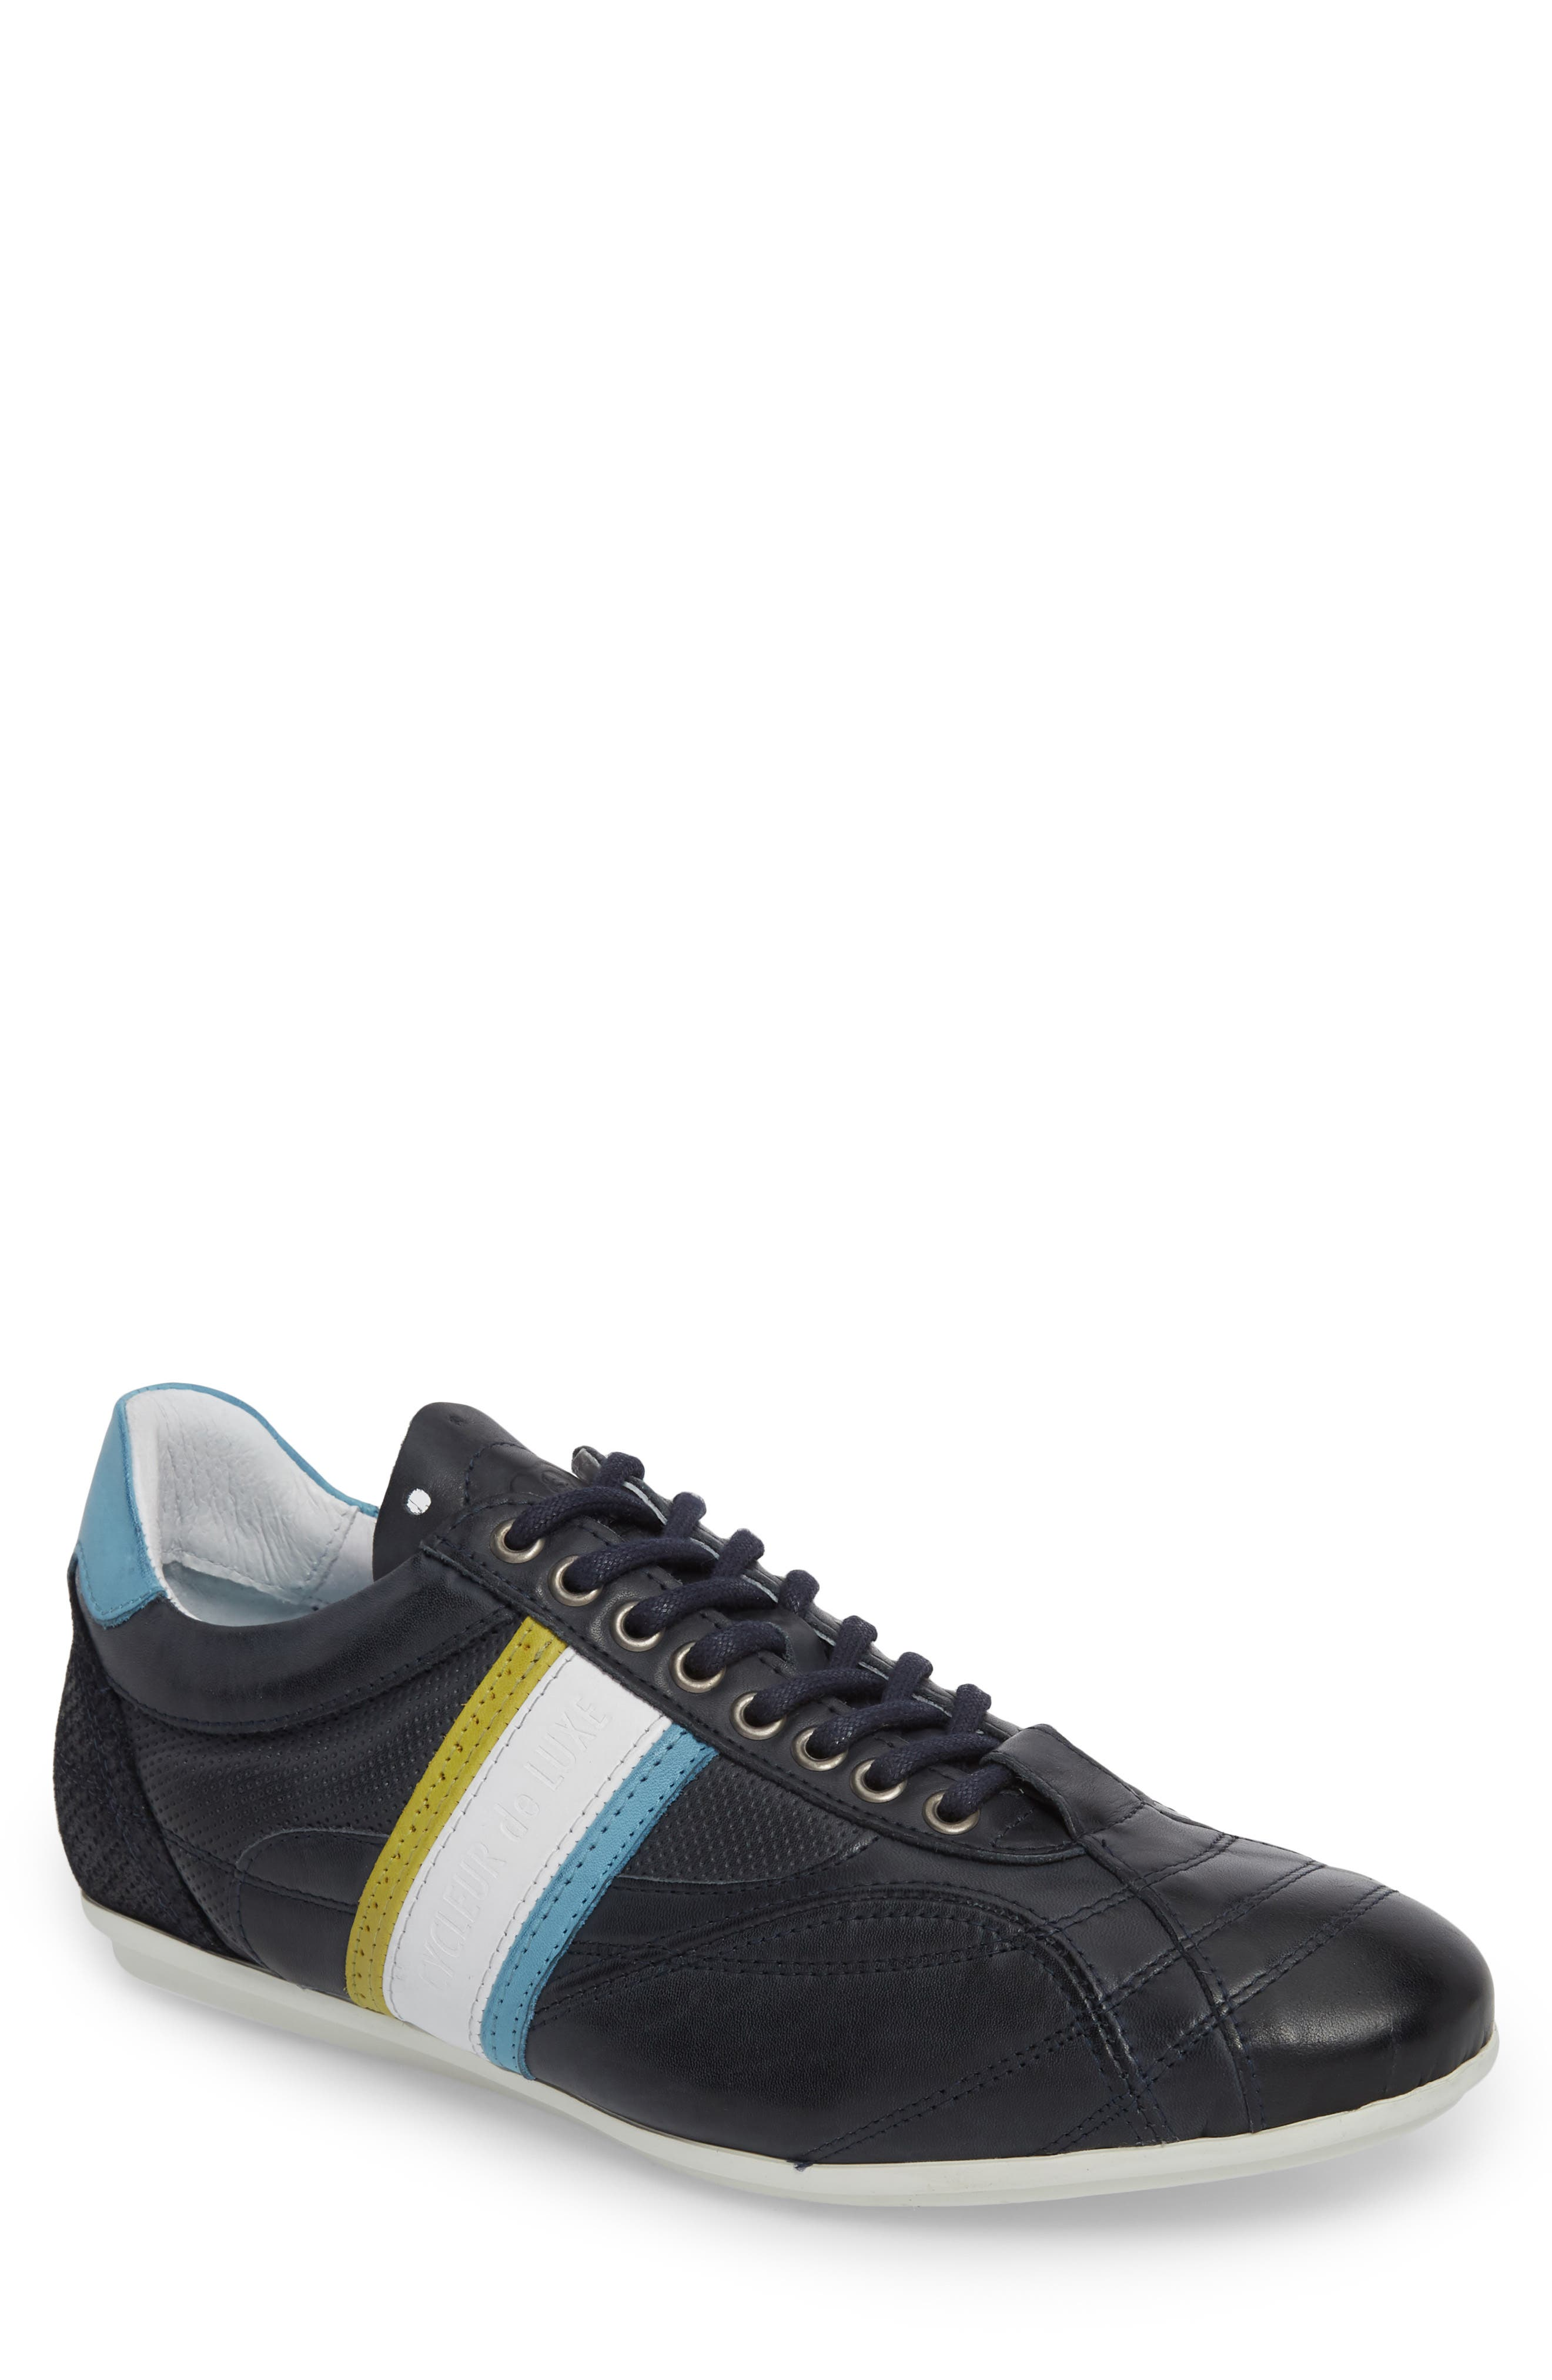 Crush City Low Top Sneaker,                             Main thumbnail 1, color,                             NAVY LEATHER